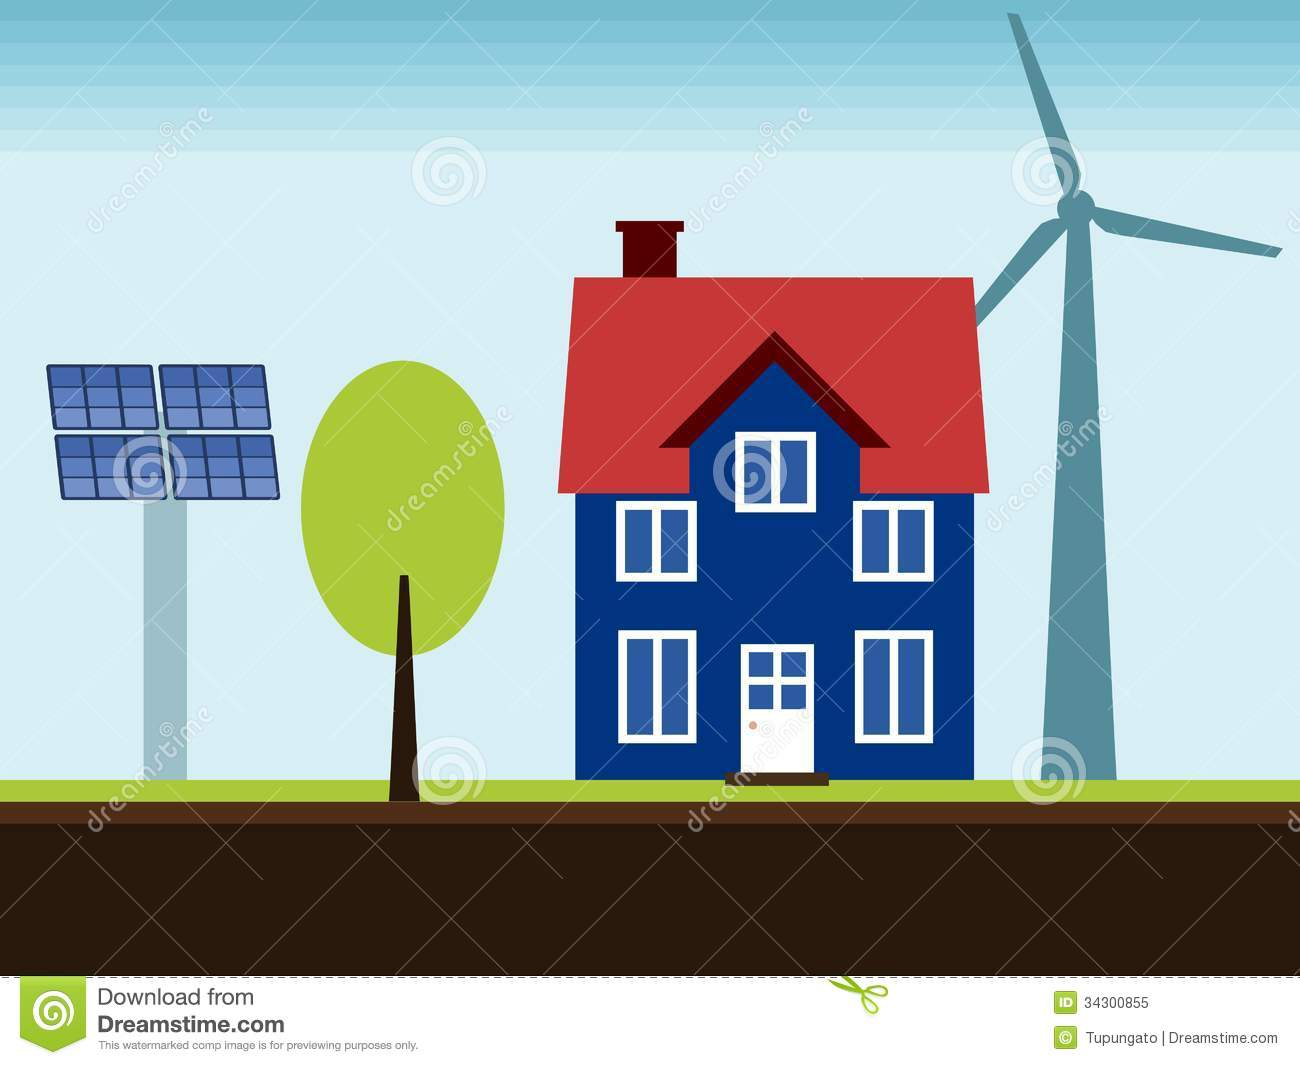 ... renewable energy sources. Wind turbine and solar power panels